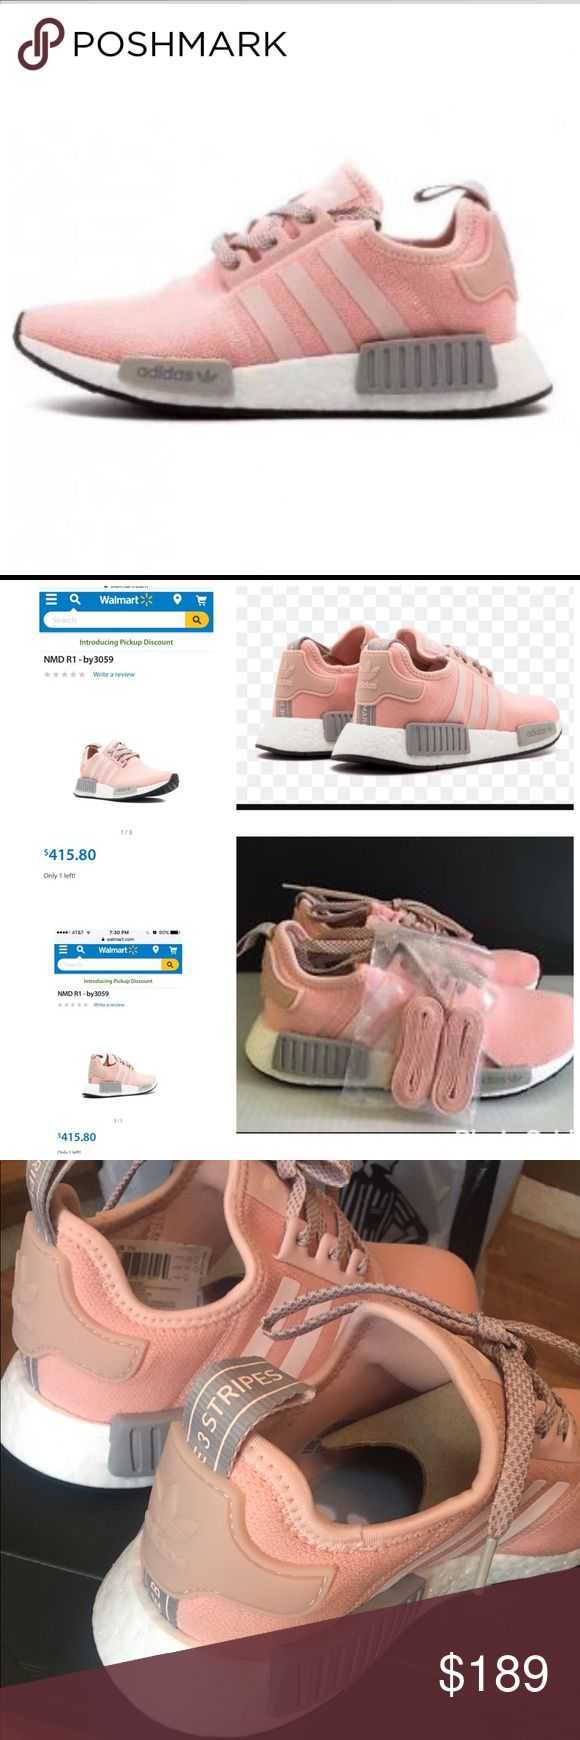 Women's Adidas NMD Fashionable,chic yet sporty. Wear with your skinnies, leggings, shorts or work out clothes. So versatile! Sold out in stores.  % authentic with proof of purchase. No low ballers please. Adidas Shoes Athletic Shoes